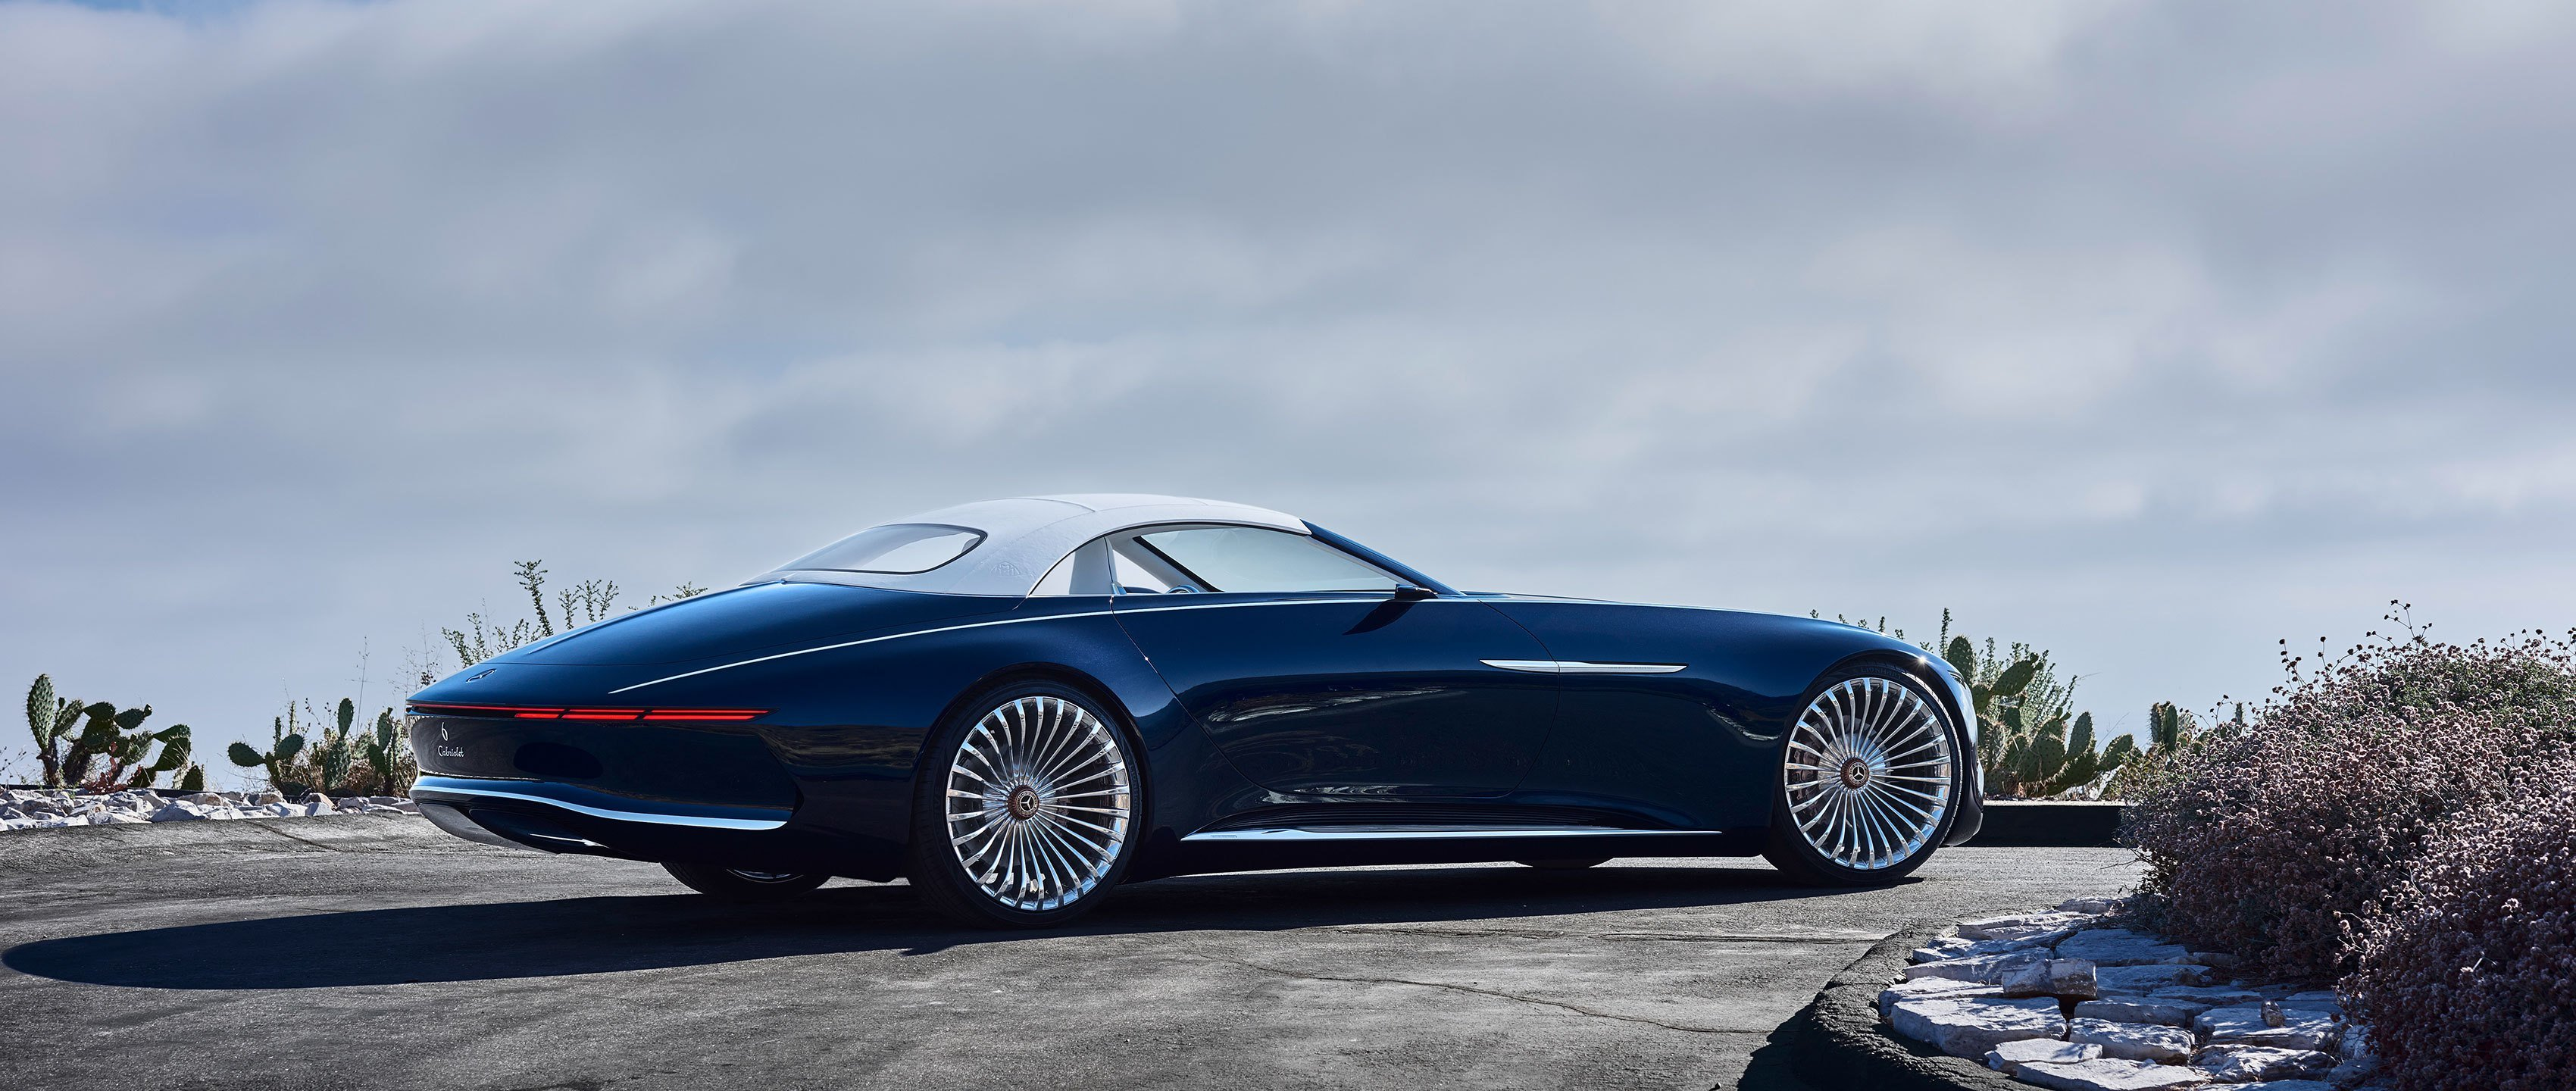 Latest Vision Mercedes Maybach 6 Cabriolet Luxury Of The Future Free Download